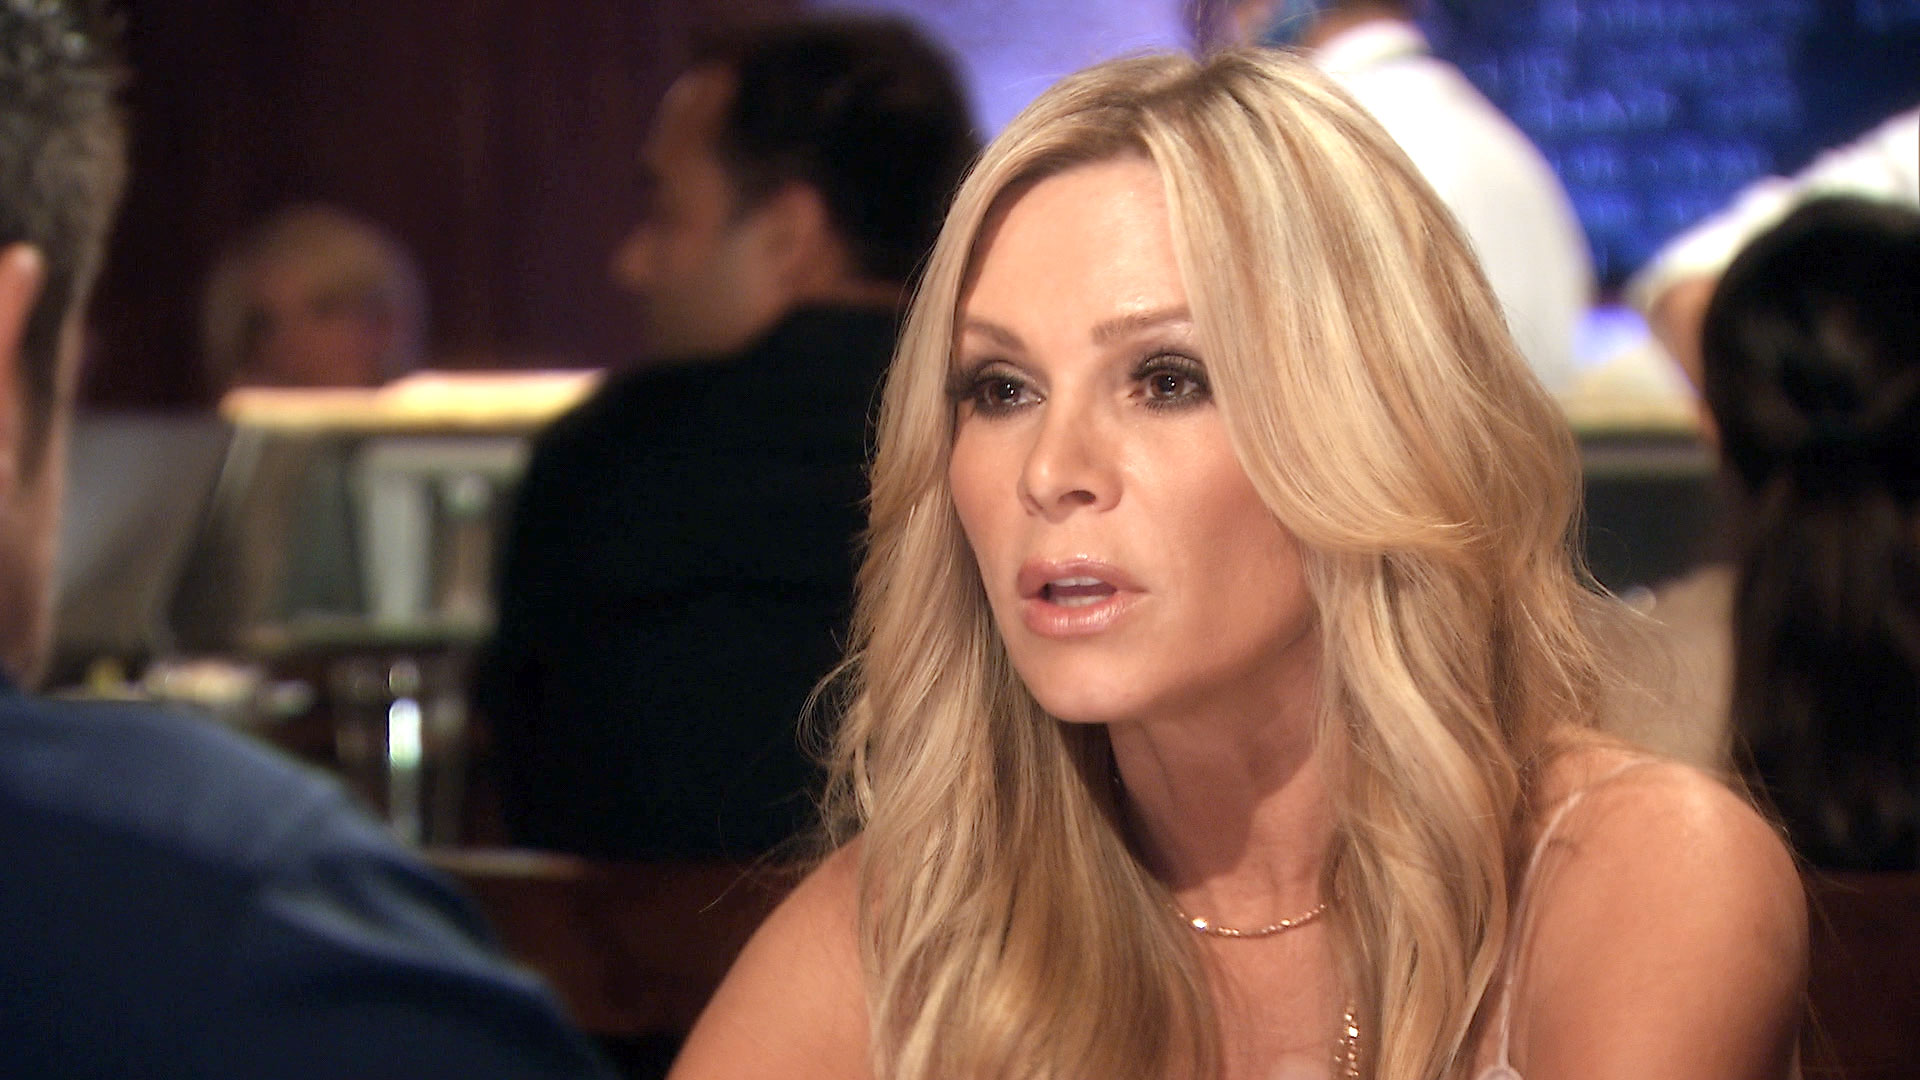 Eddie Refuses to Give Tamra's Son Money